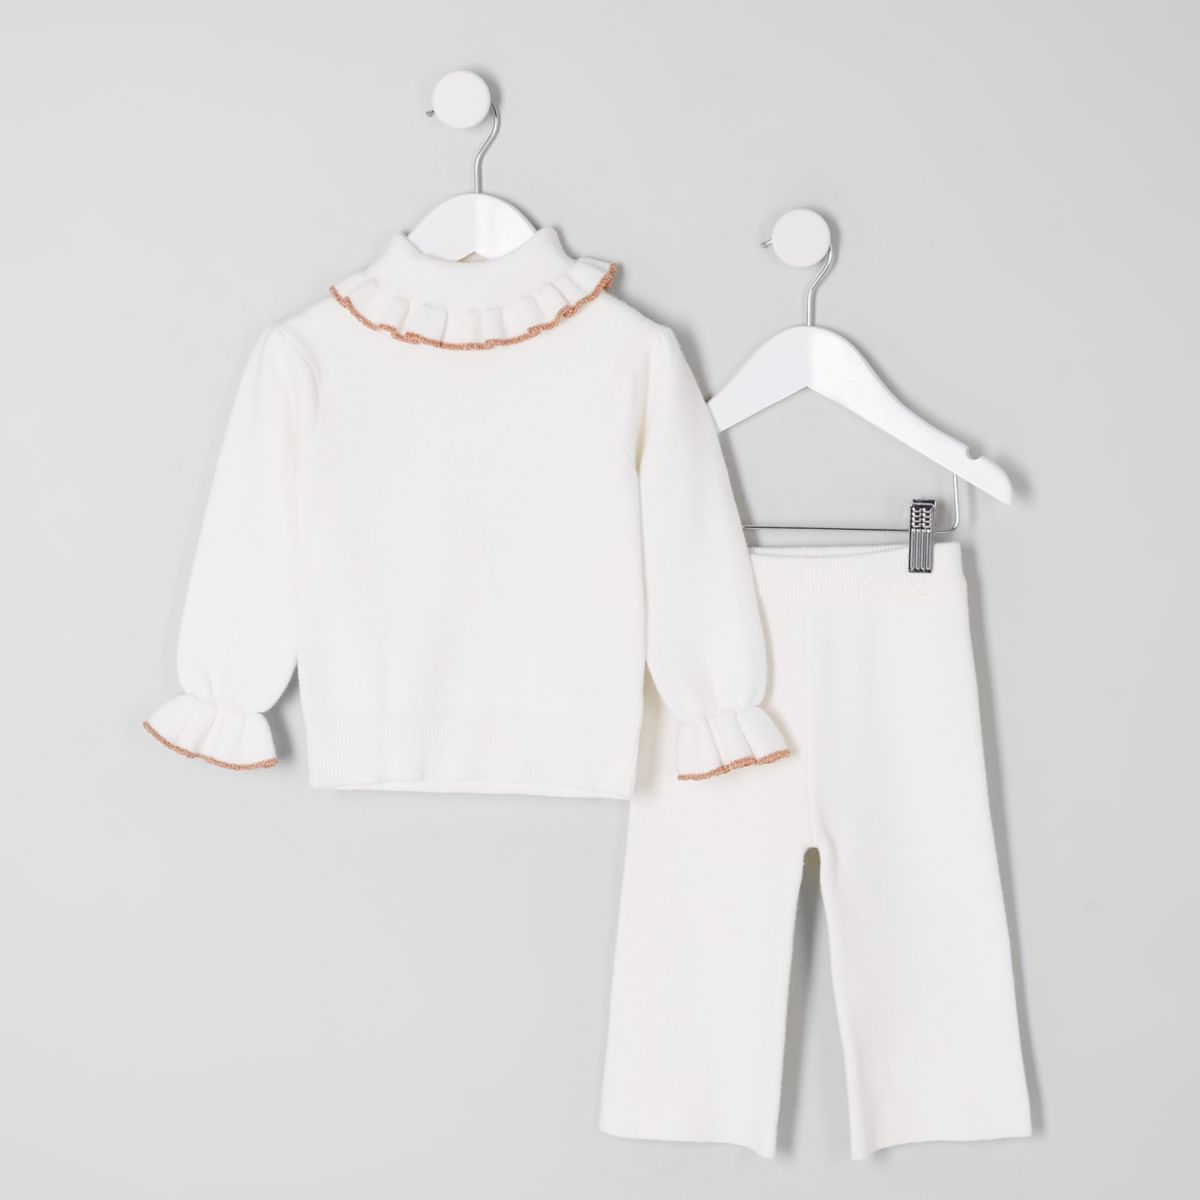 d230989f1 Mini girls cream knit roll neck outfit - Baby Girls Outfits - Mini ...